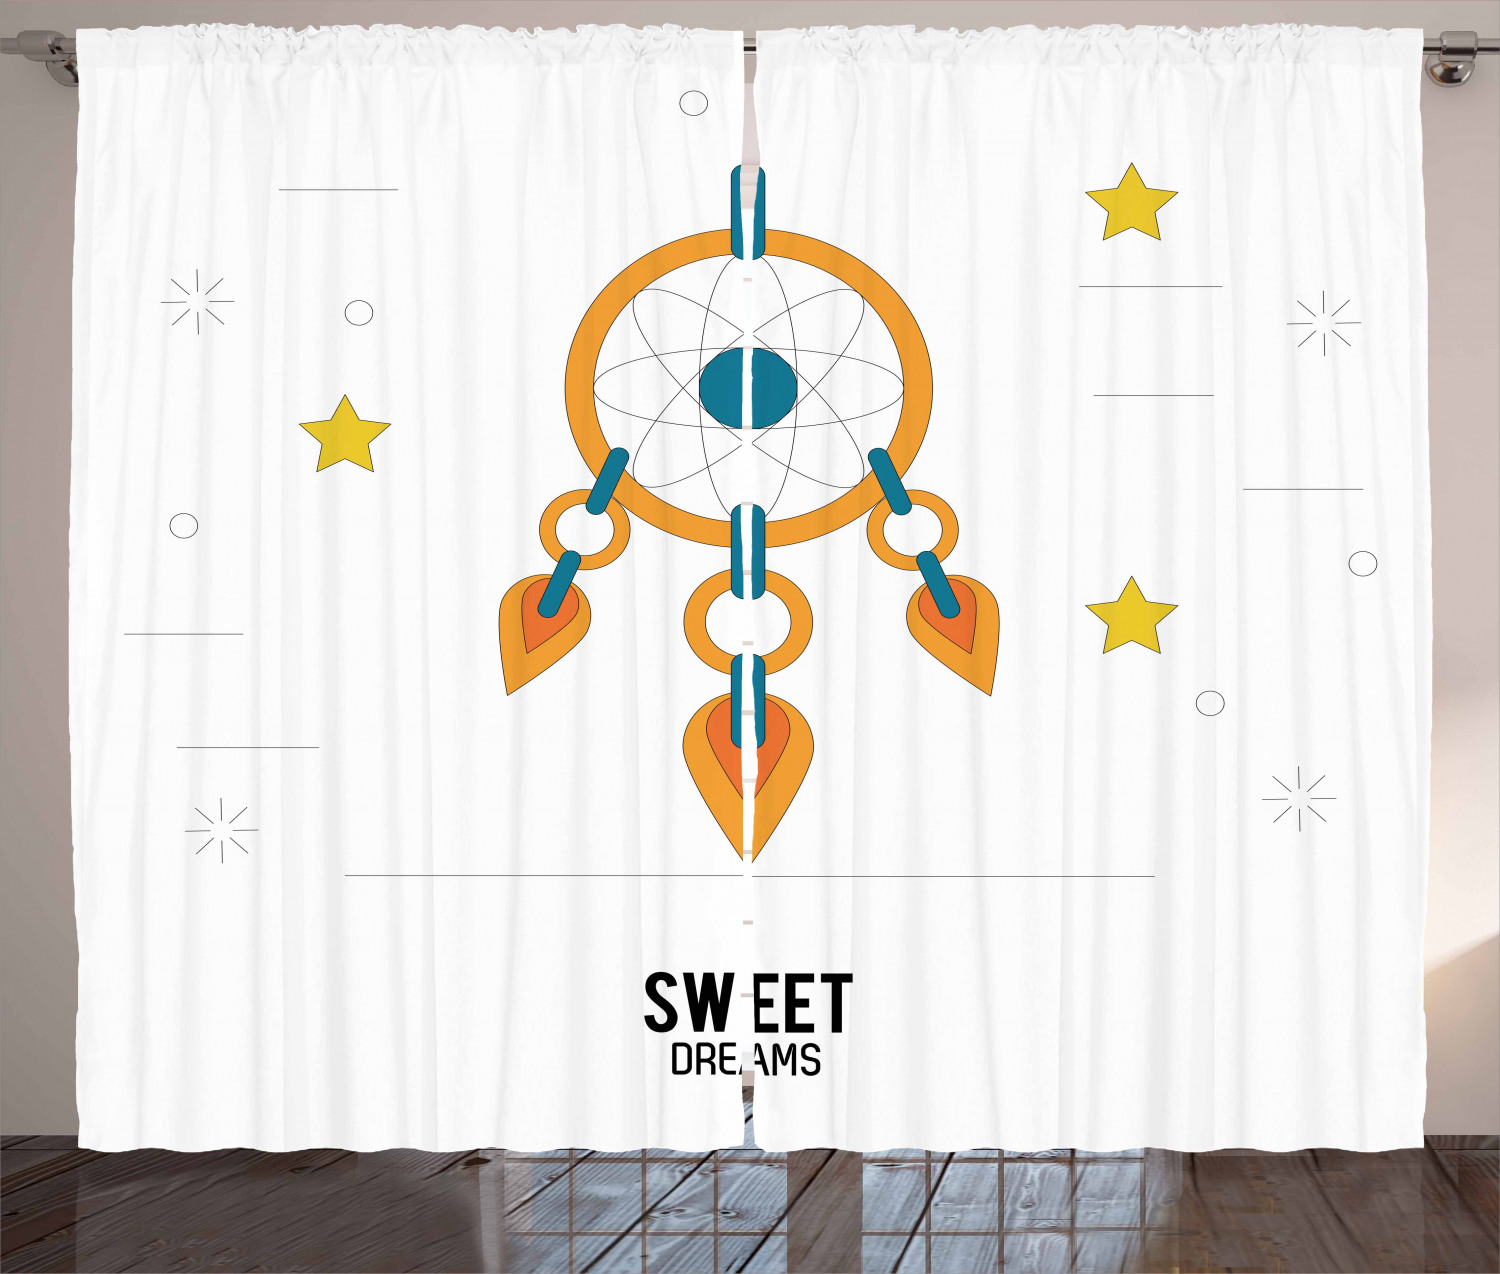 Sweet Dreams Curtains 2 Panels Set, Dream Catcher Design